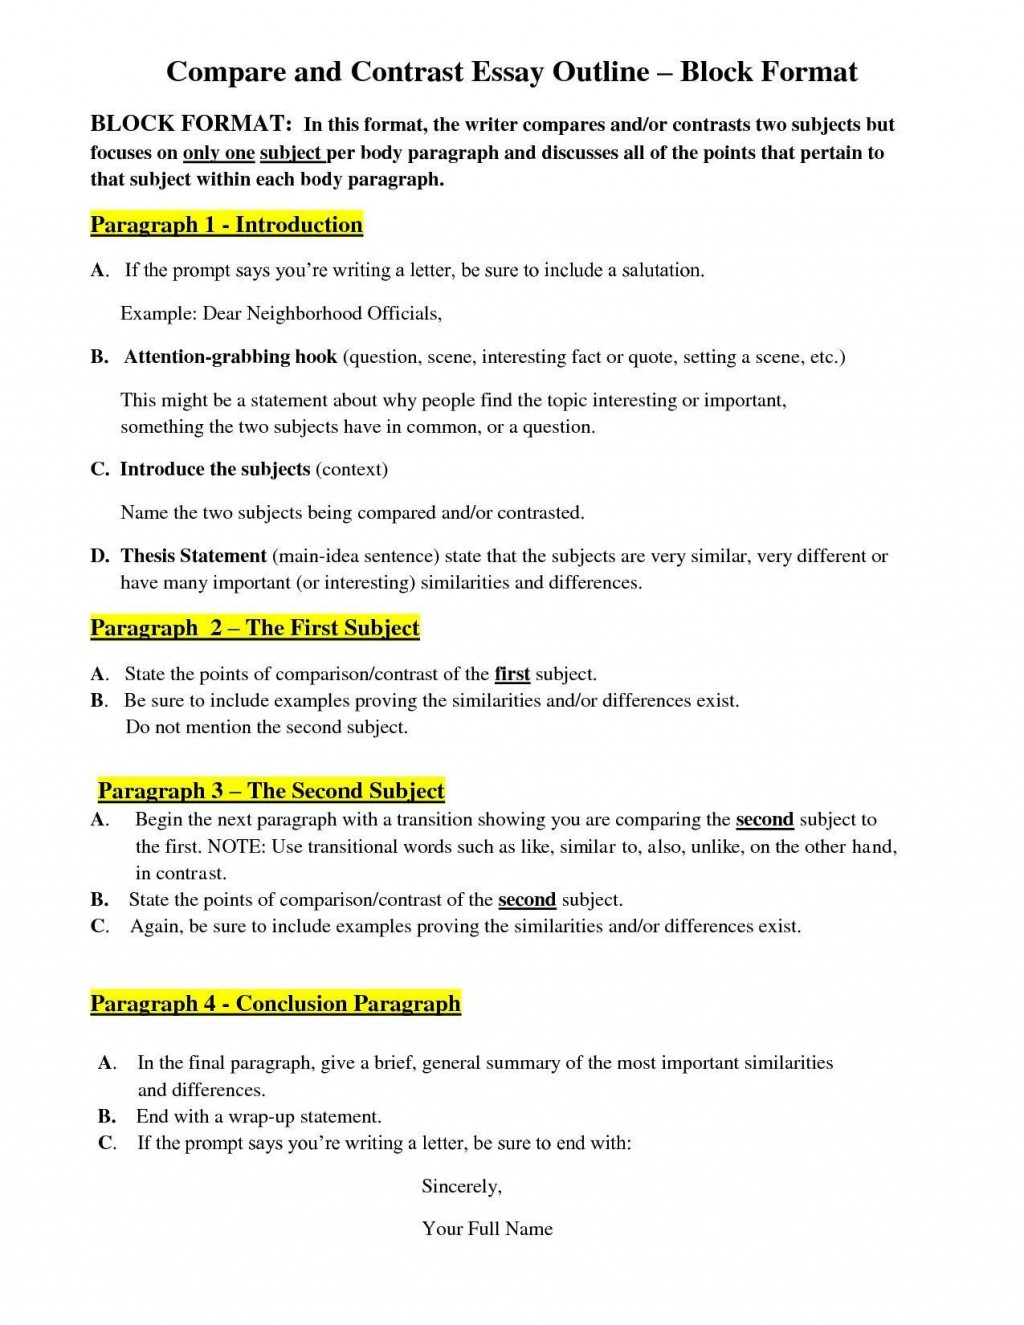 006 Texting While Driving Essay Tok Presentation Template New Outline Persuasive Com And Wonderful Pdf Large